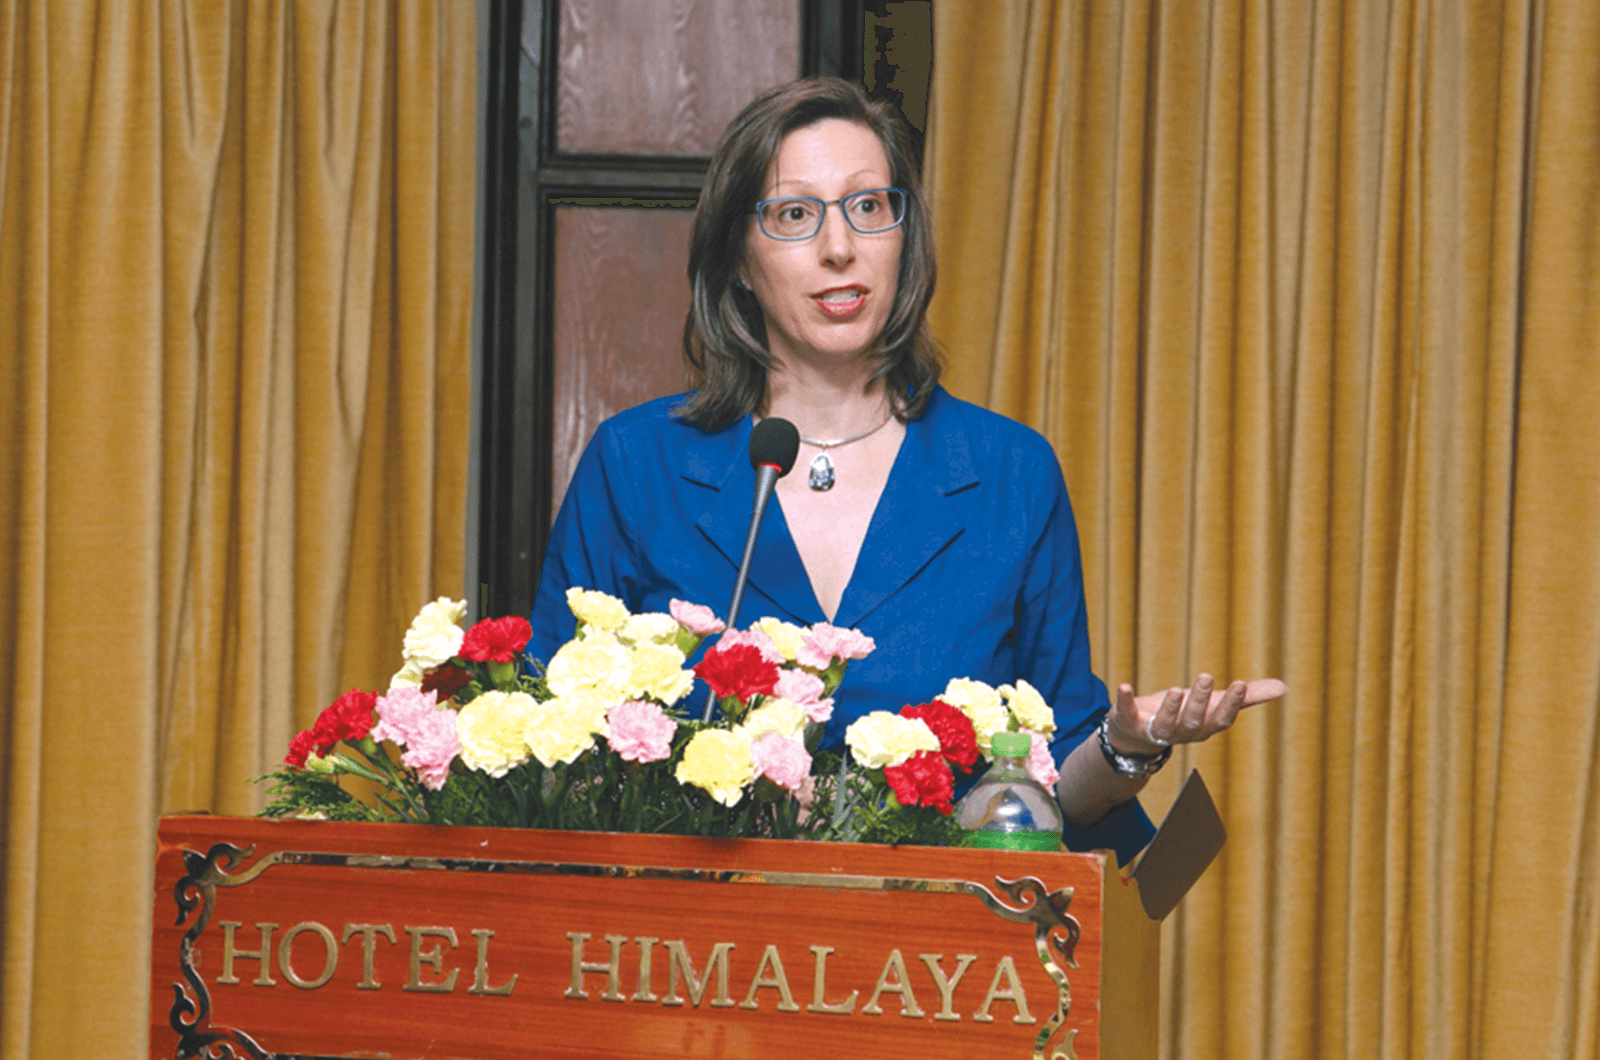 Alaina B. Teplitz, the U.S. Ambassador to Nepal, speaks to the Tourism Toastmasters club in Kathmandu, Nepal, in July 2018. Photo by Dinesh Shrestha